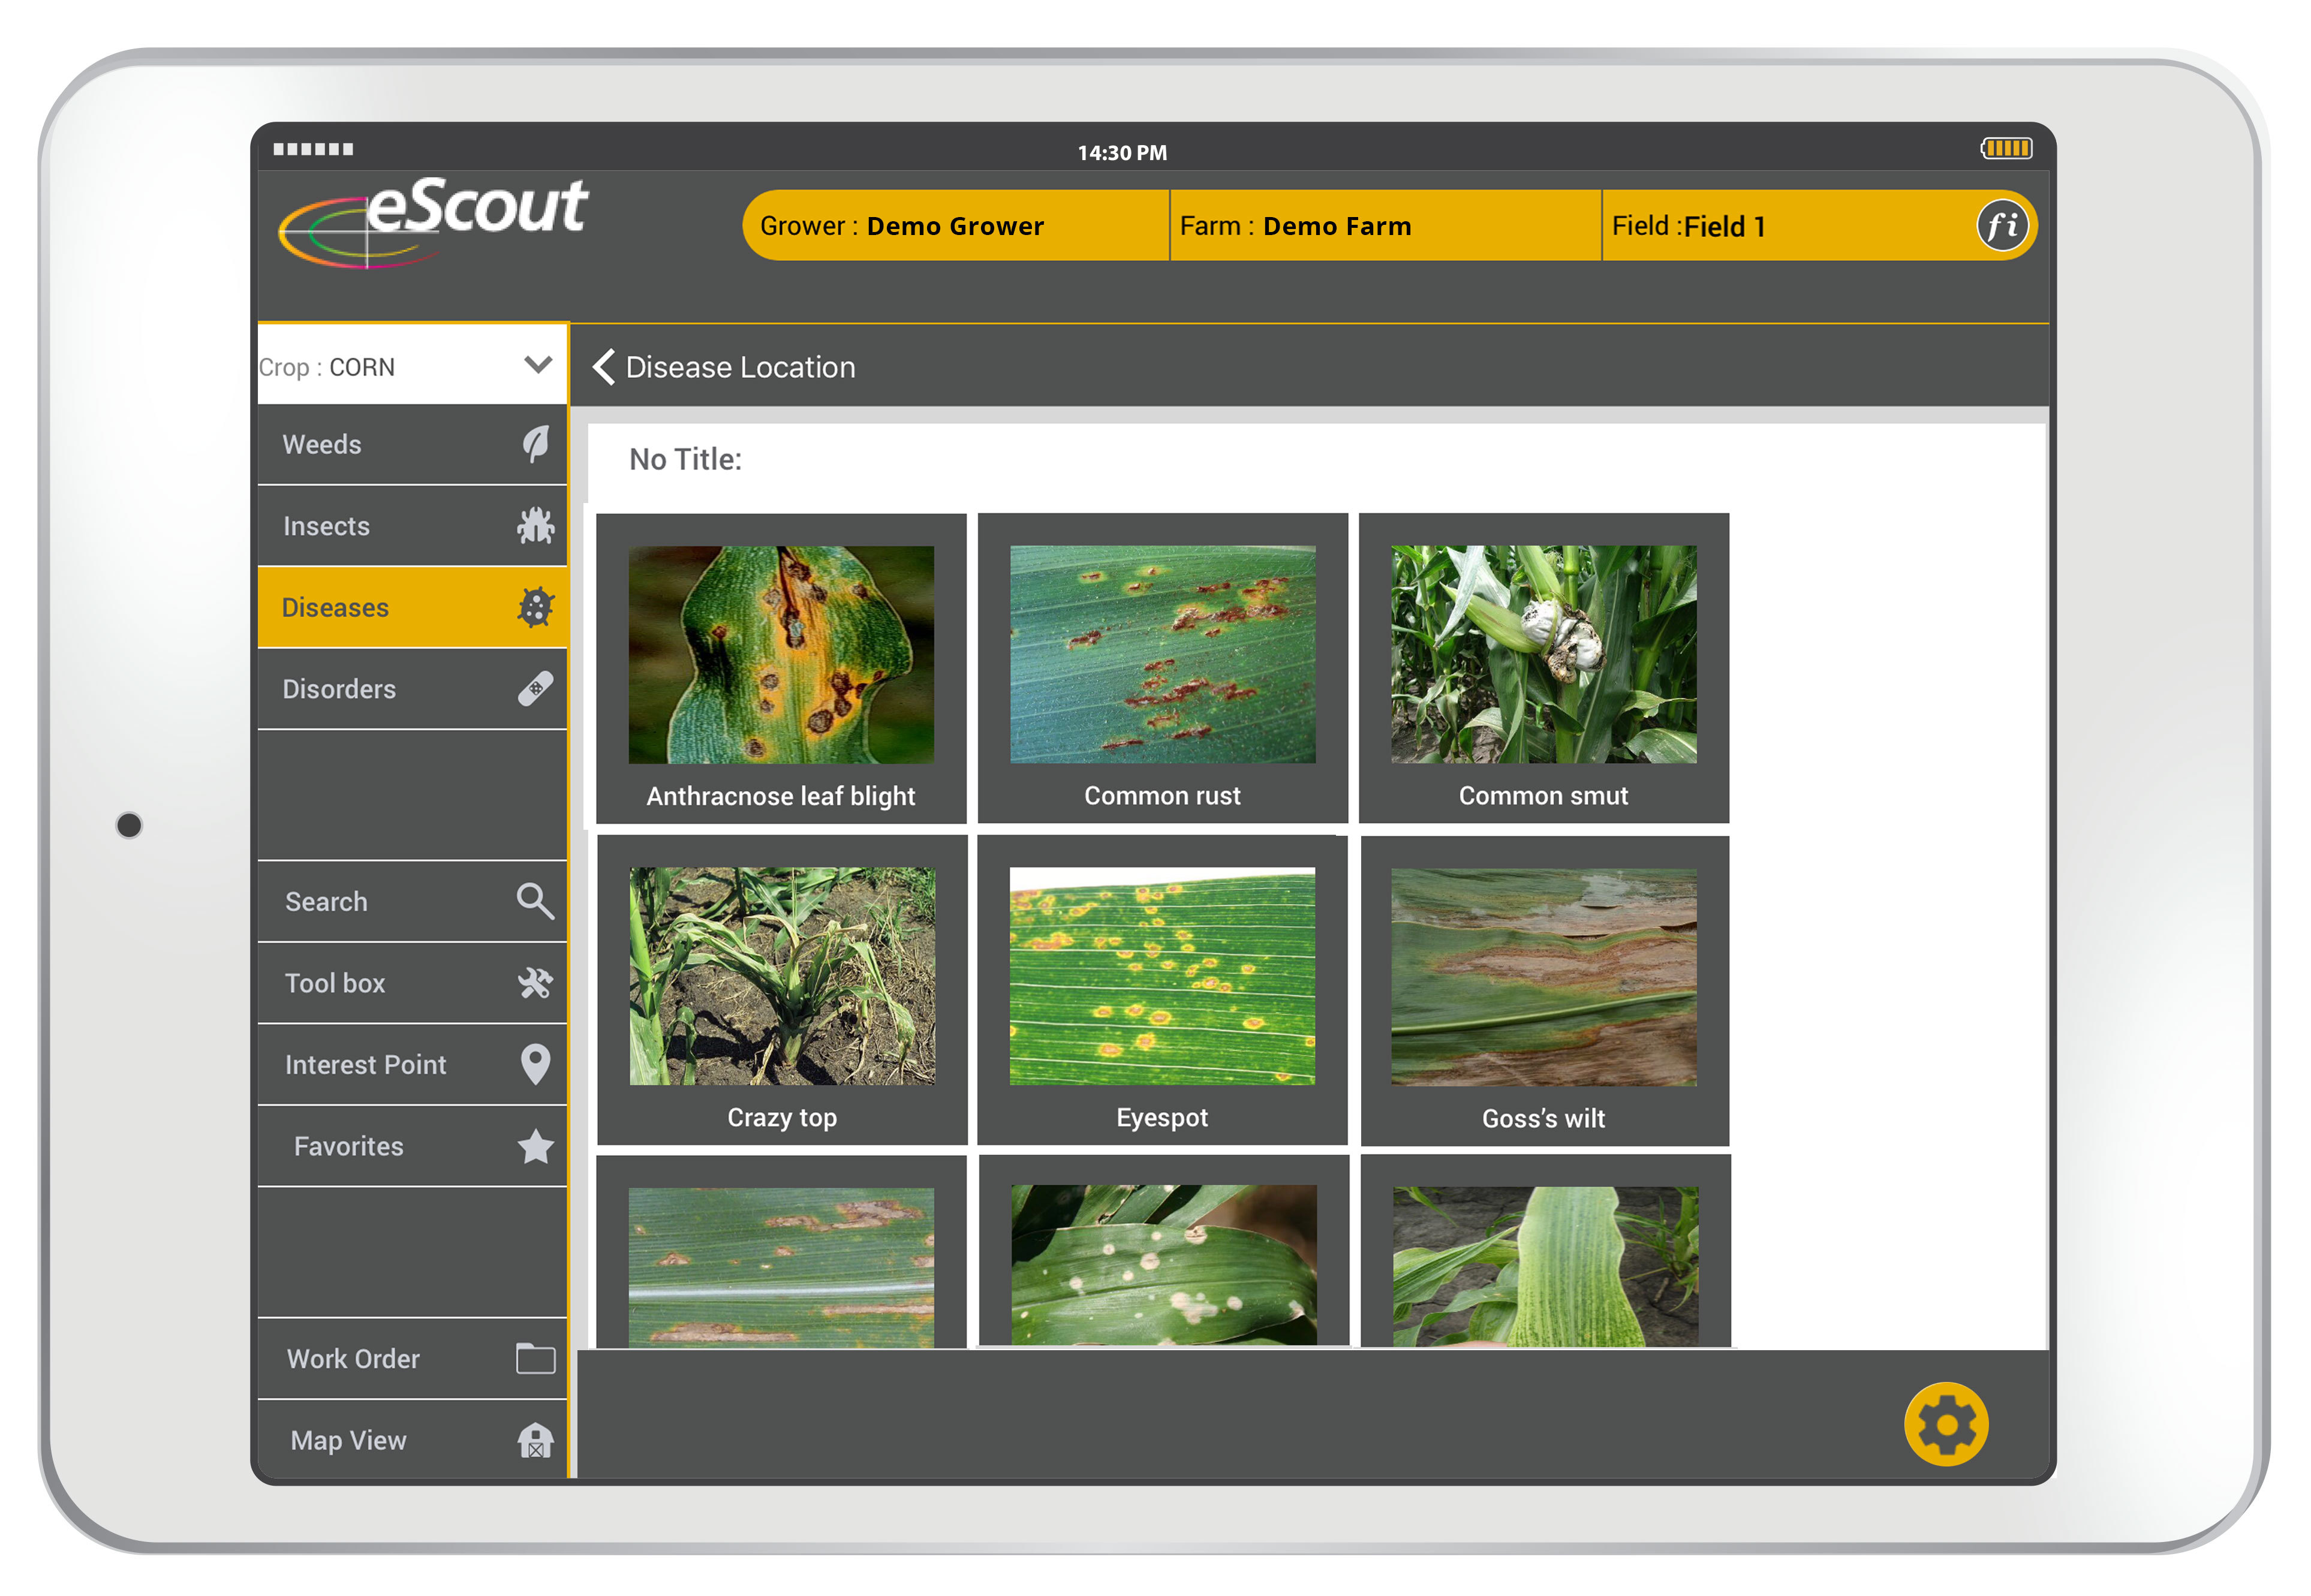 Equipped with tools to monitor and address field conditions, eScout generates real-time reports, integrates with agronomy software, and provides users with high-quality scouting information. (Graphic: Business Wire)